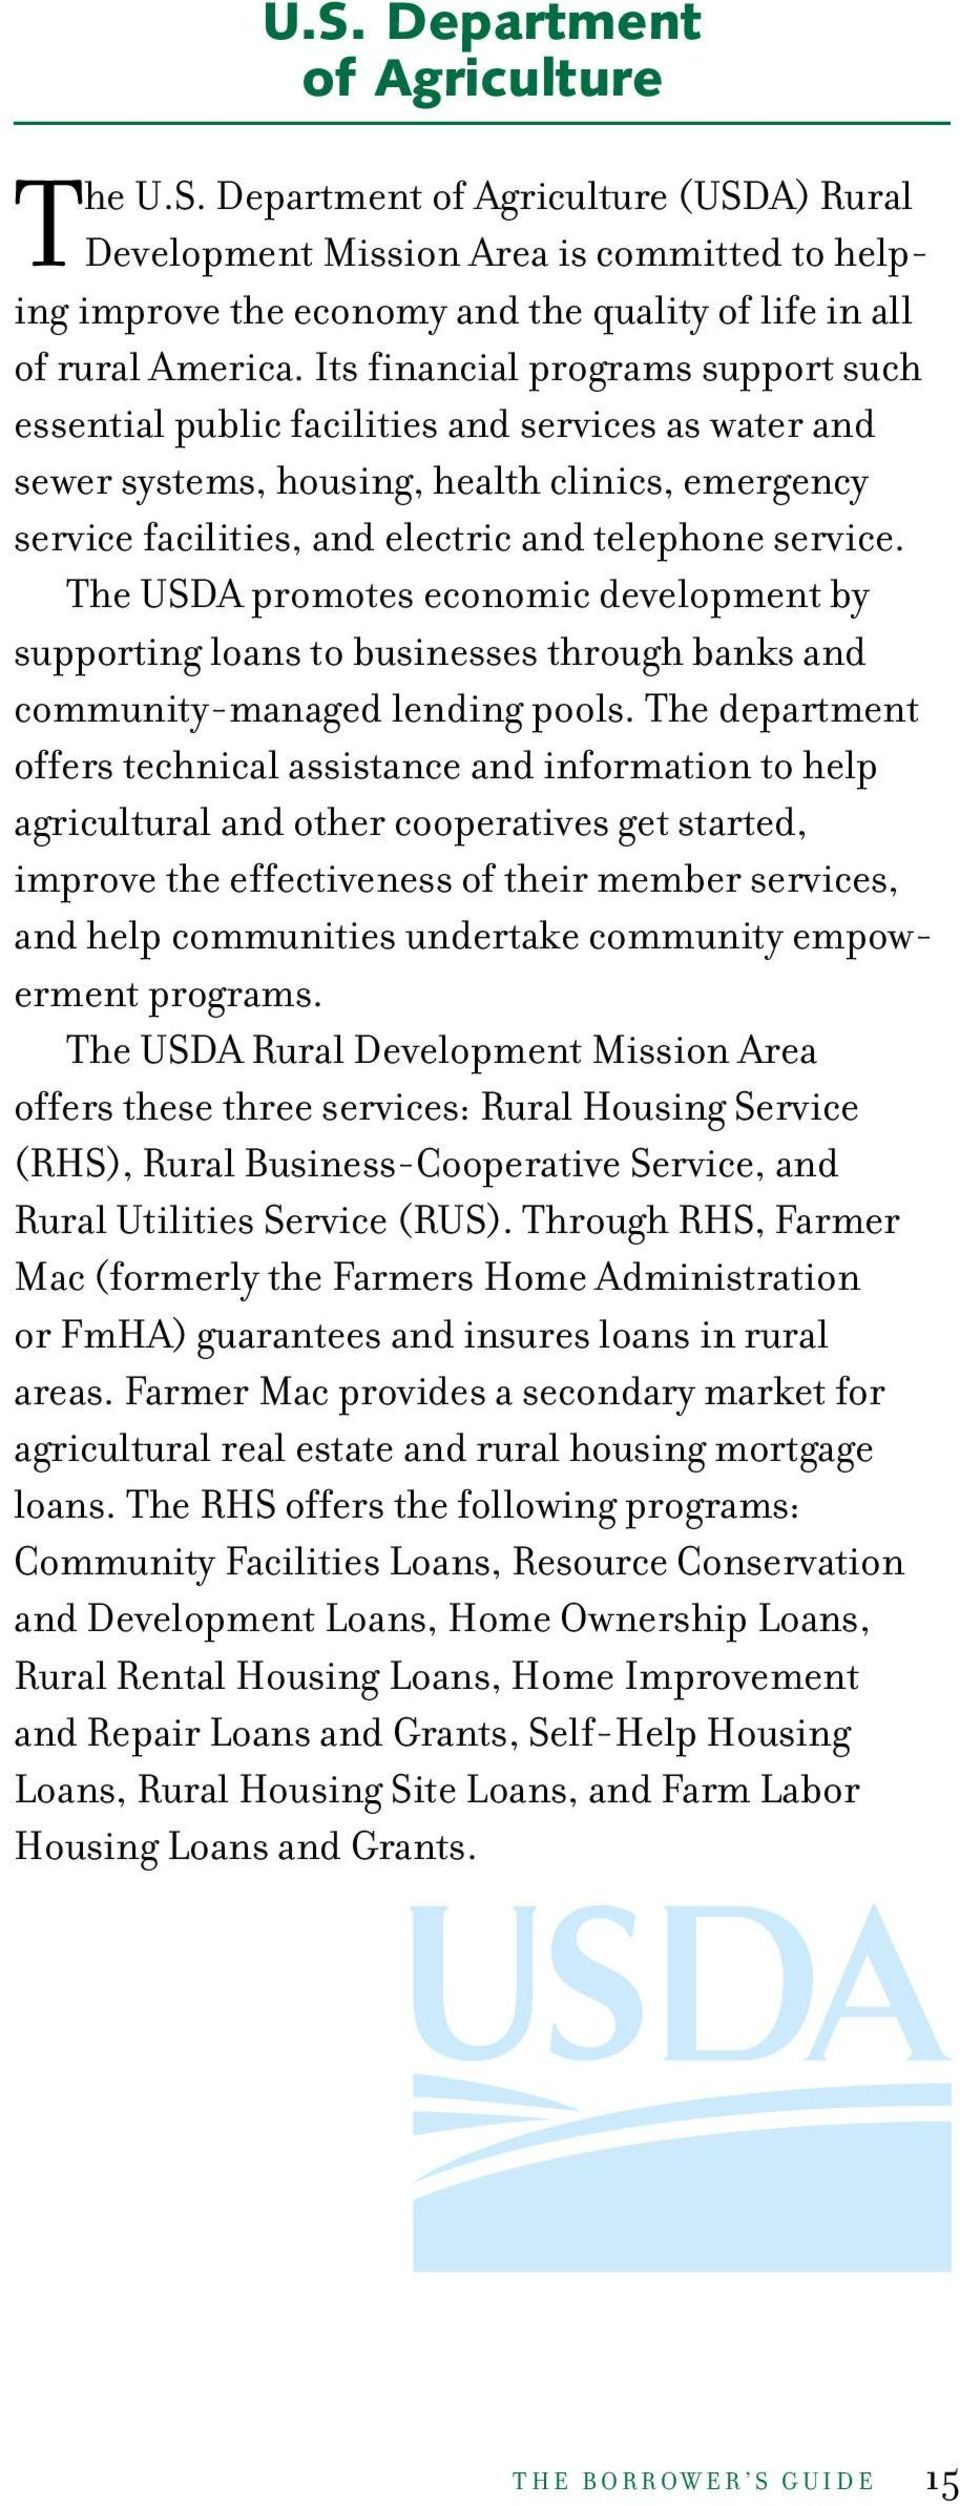 The USDA promotes economic development by supporting loans to businesses through banks and community-managed lending pools.